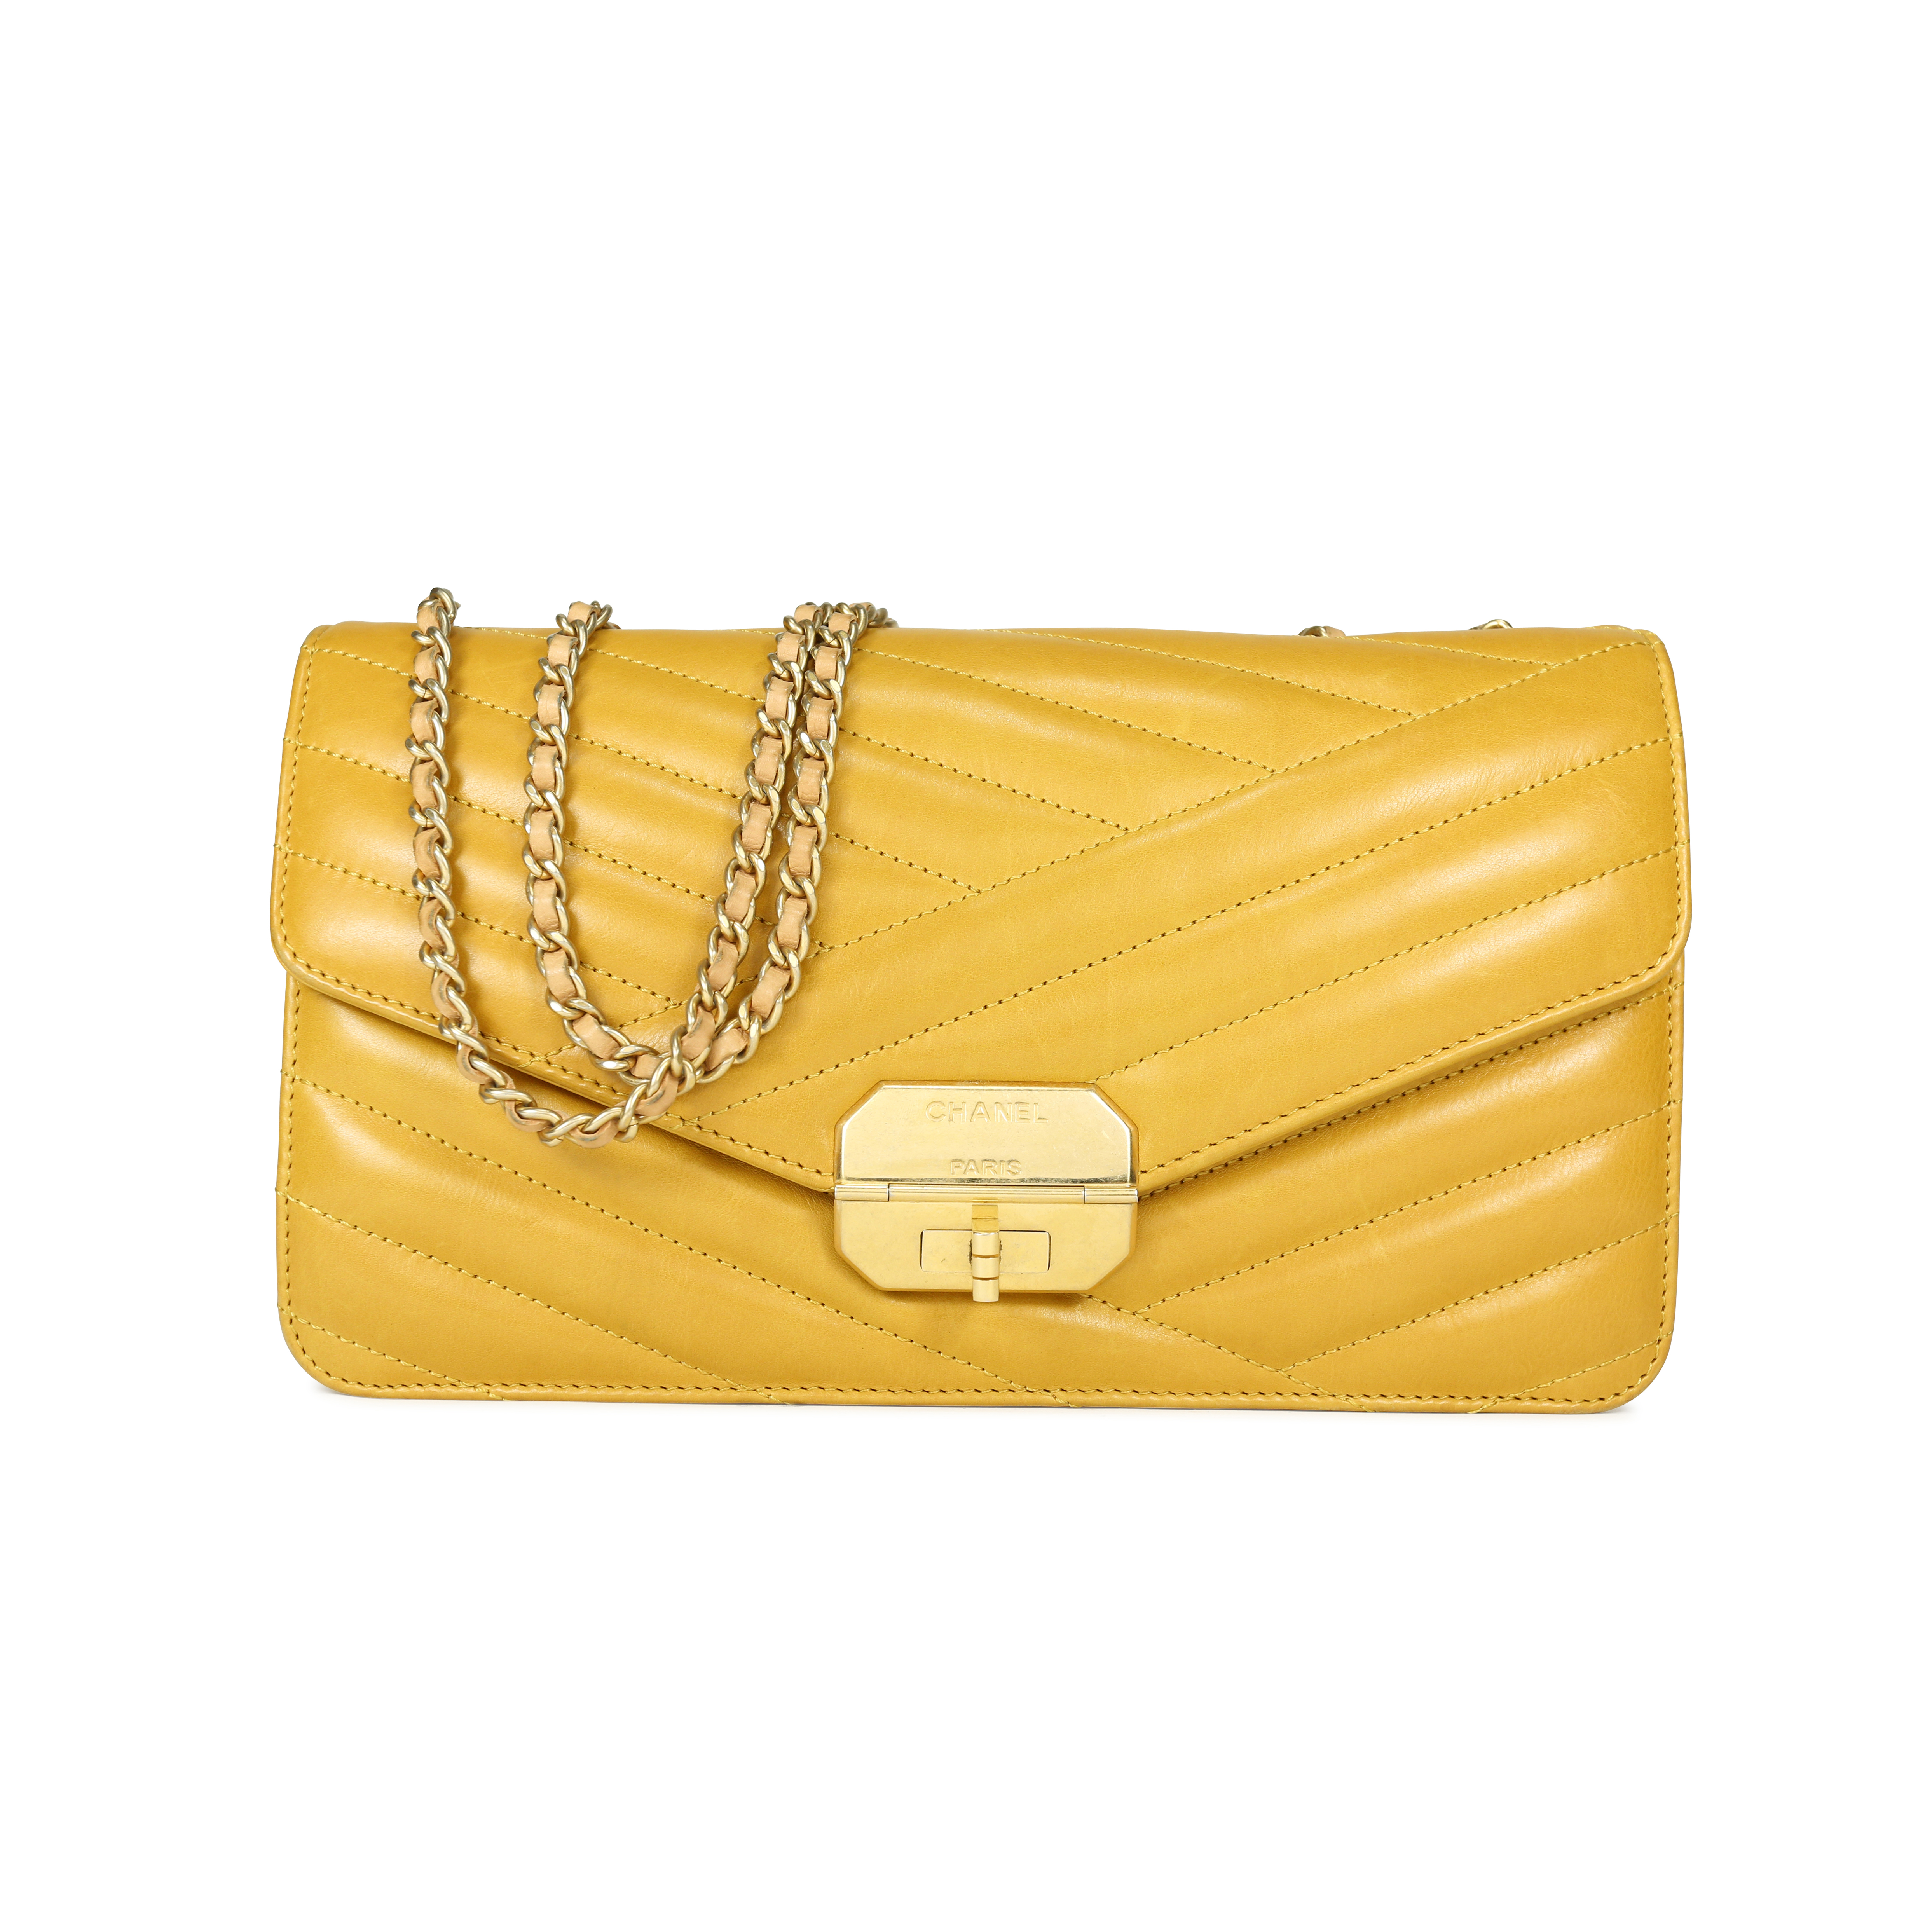 ff2b688aba47 Authentic Second Hand Chanel Chevron Quilted Lambskin Gabrielle Flap Bag  (PSS-190-00001) | THE FIFTH COLLECTION